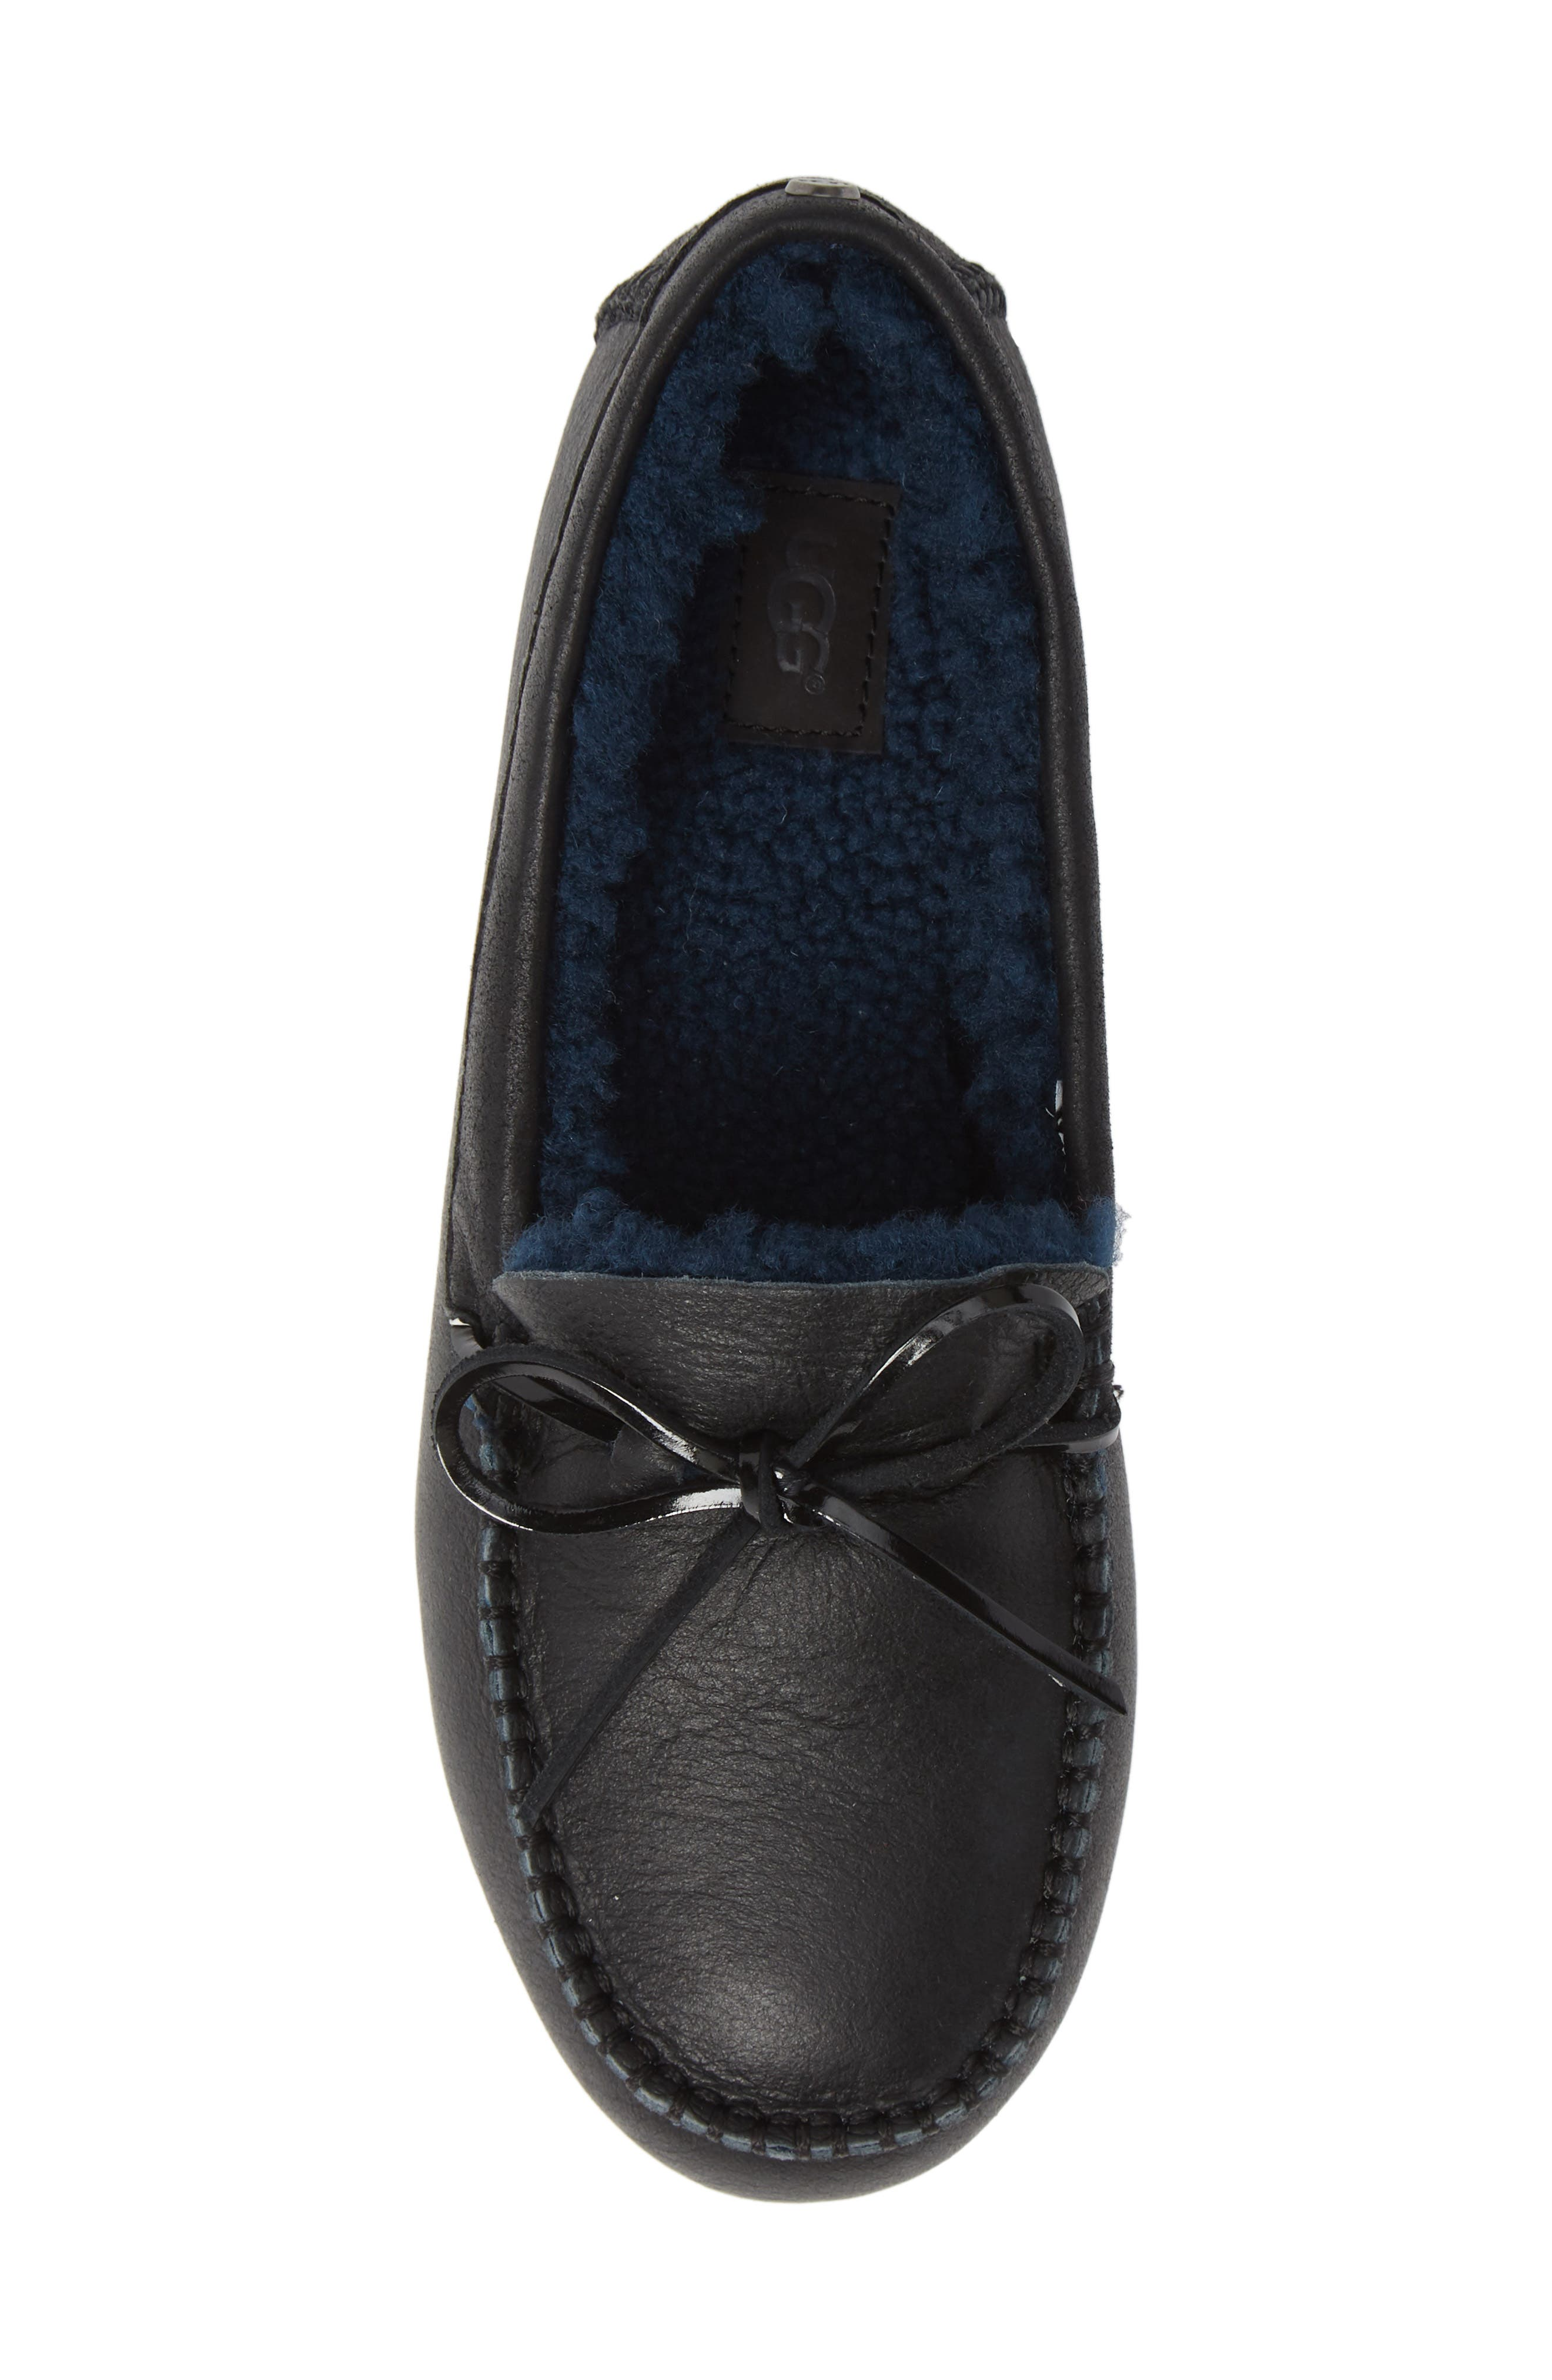 Deluxe Loafer,                             Alternate thumbnail 5, color,                             BLACK LEATHER